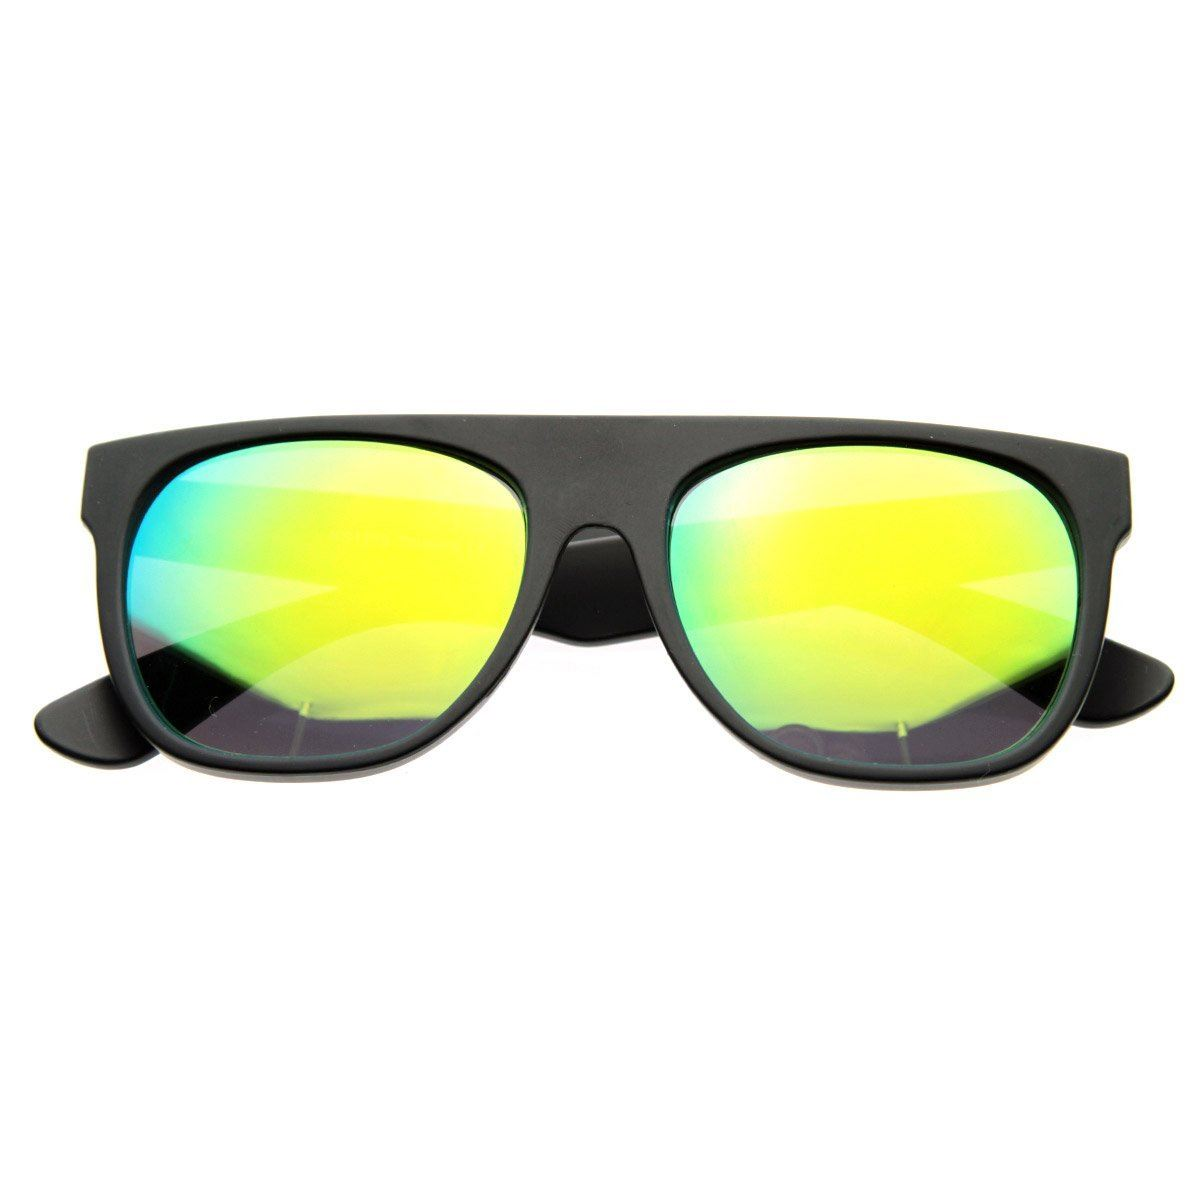 Retro Intense Revo Mirror Lens Super Flat Top Wayfarers Sunglasses- Yellow Lens